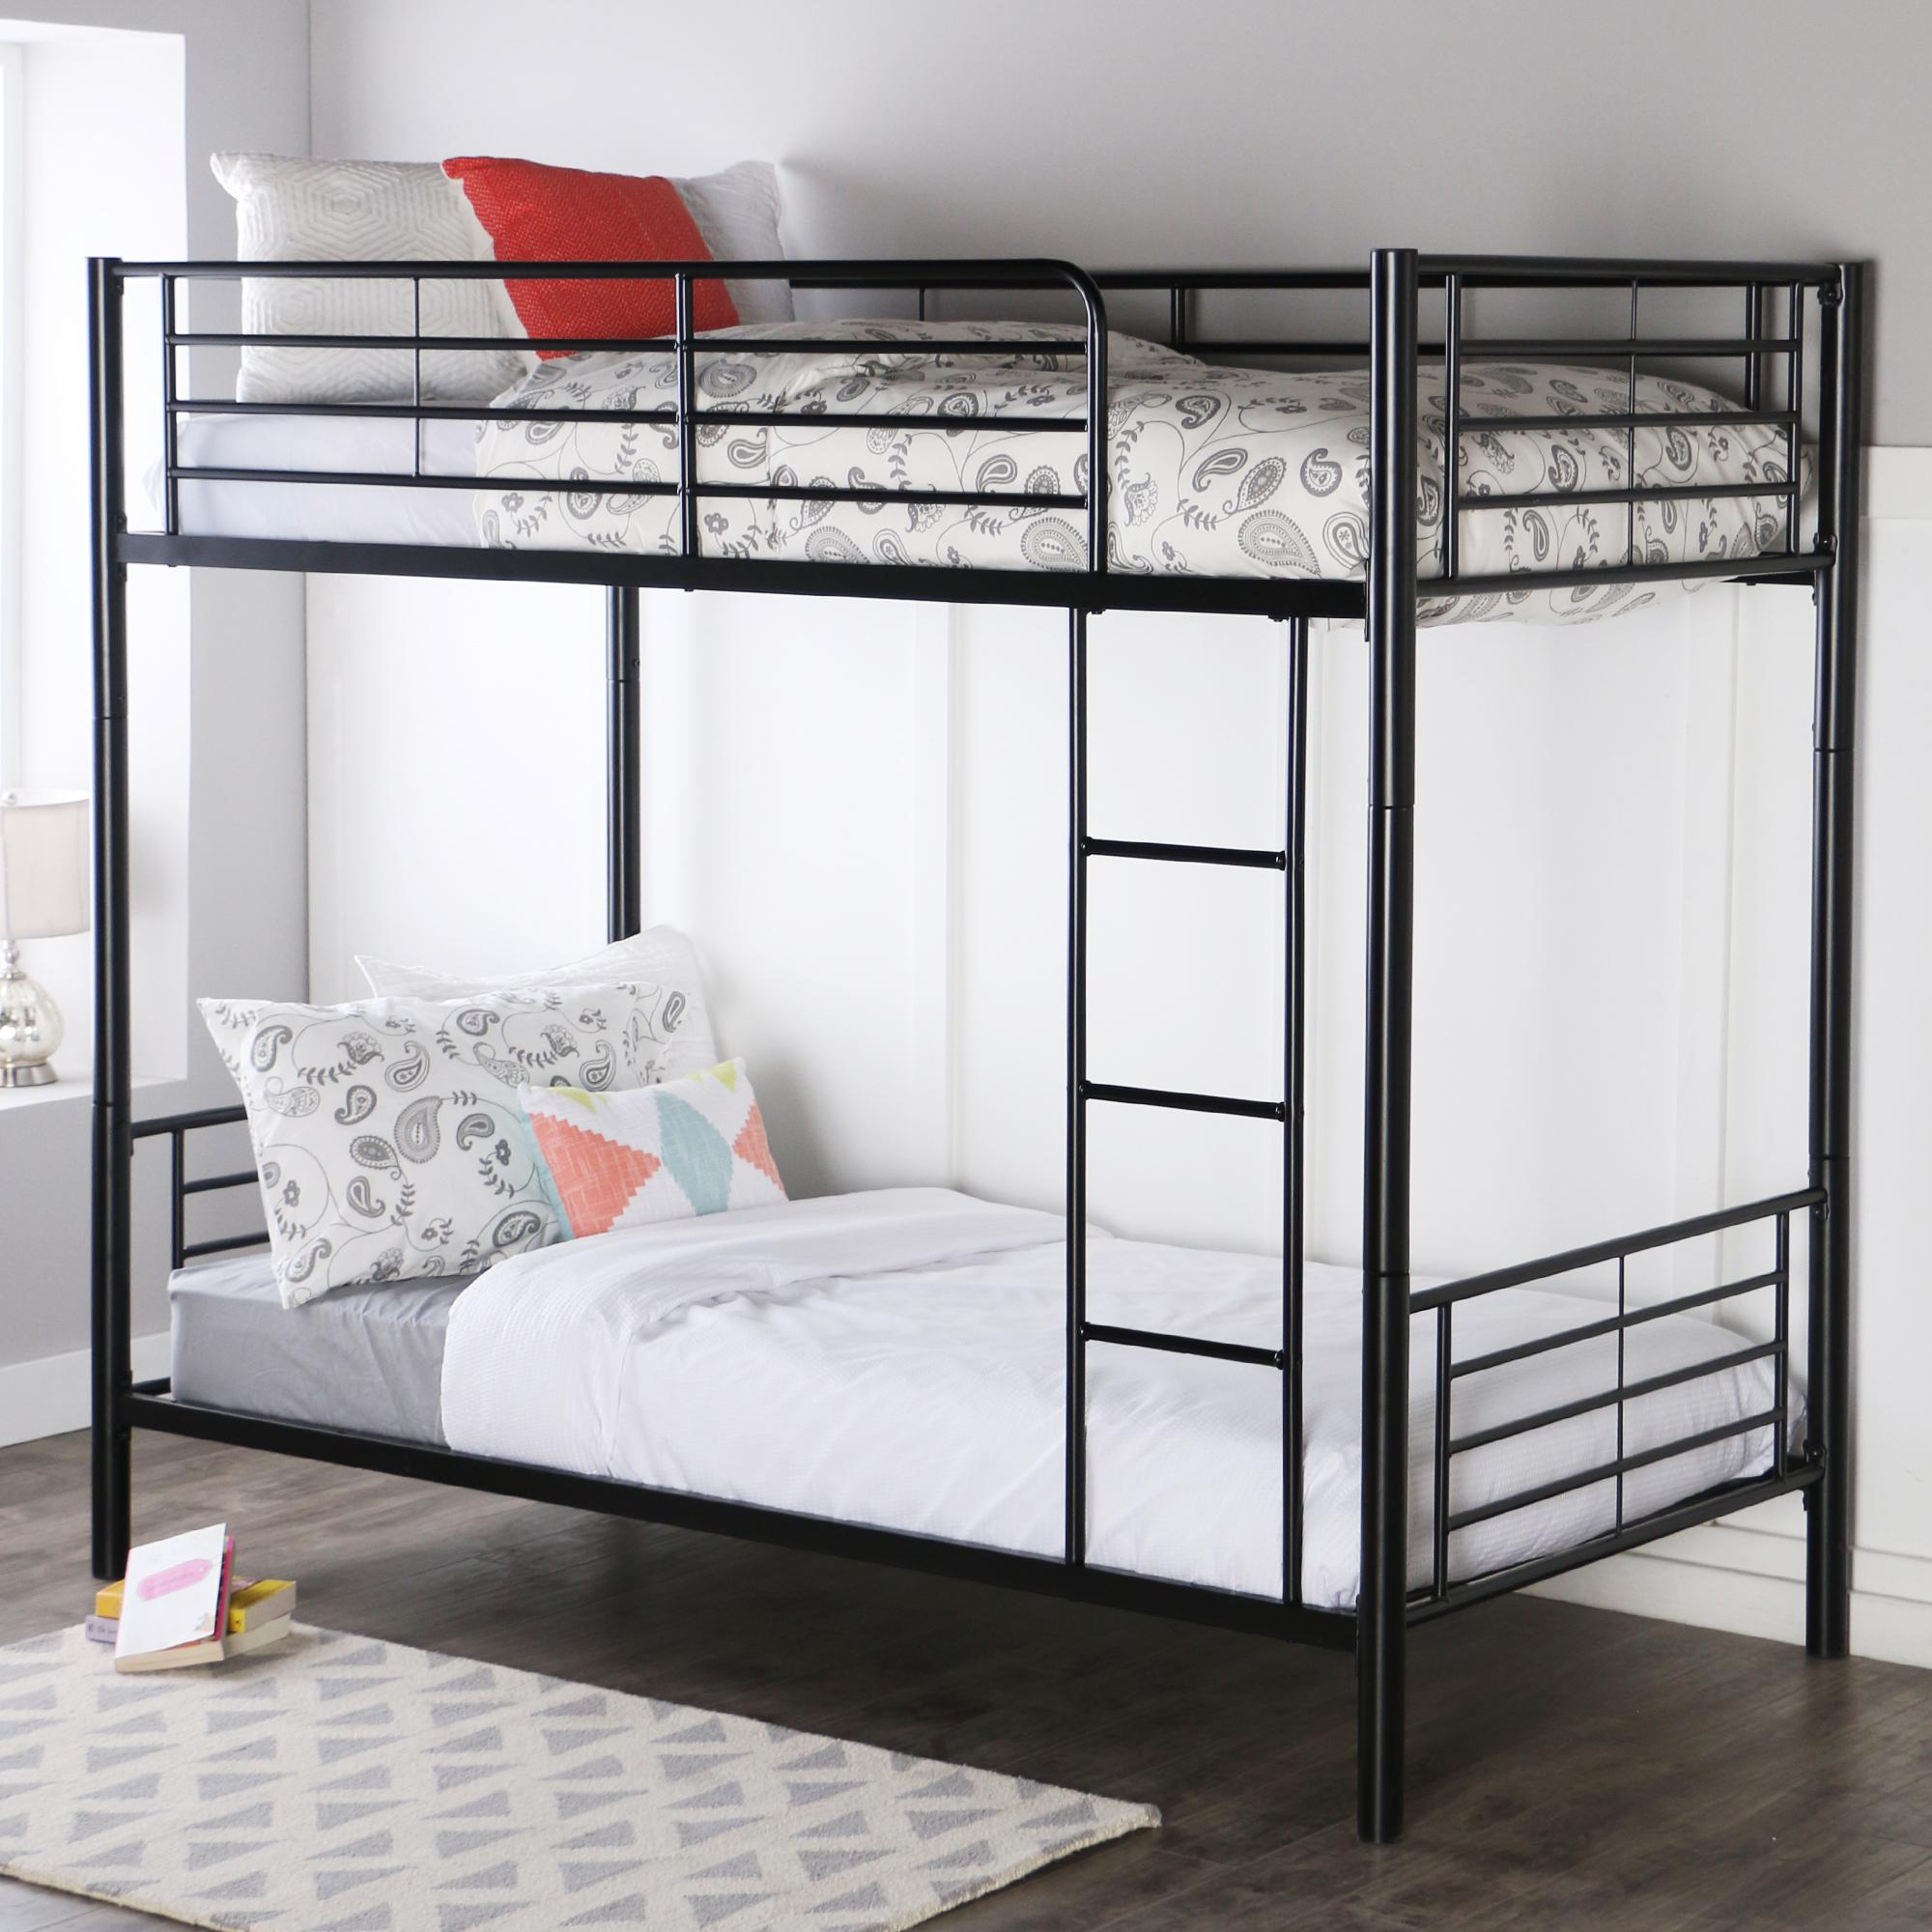 Walker edison twin over twin metal bunk bed Black bunk beds